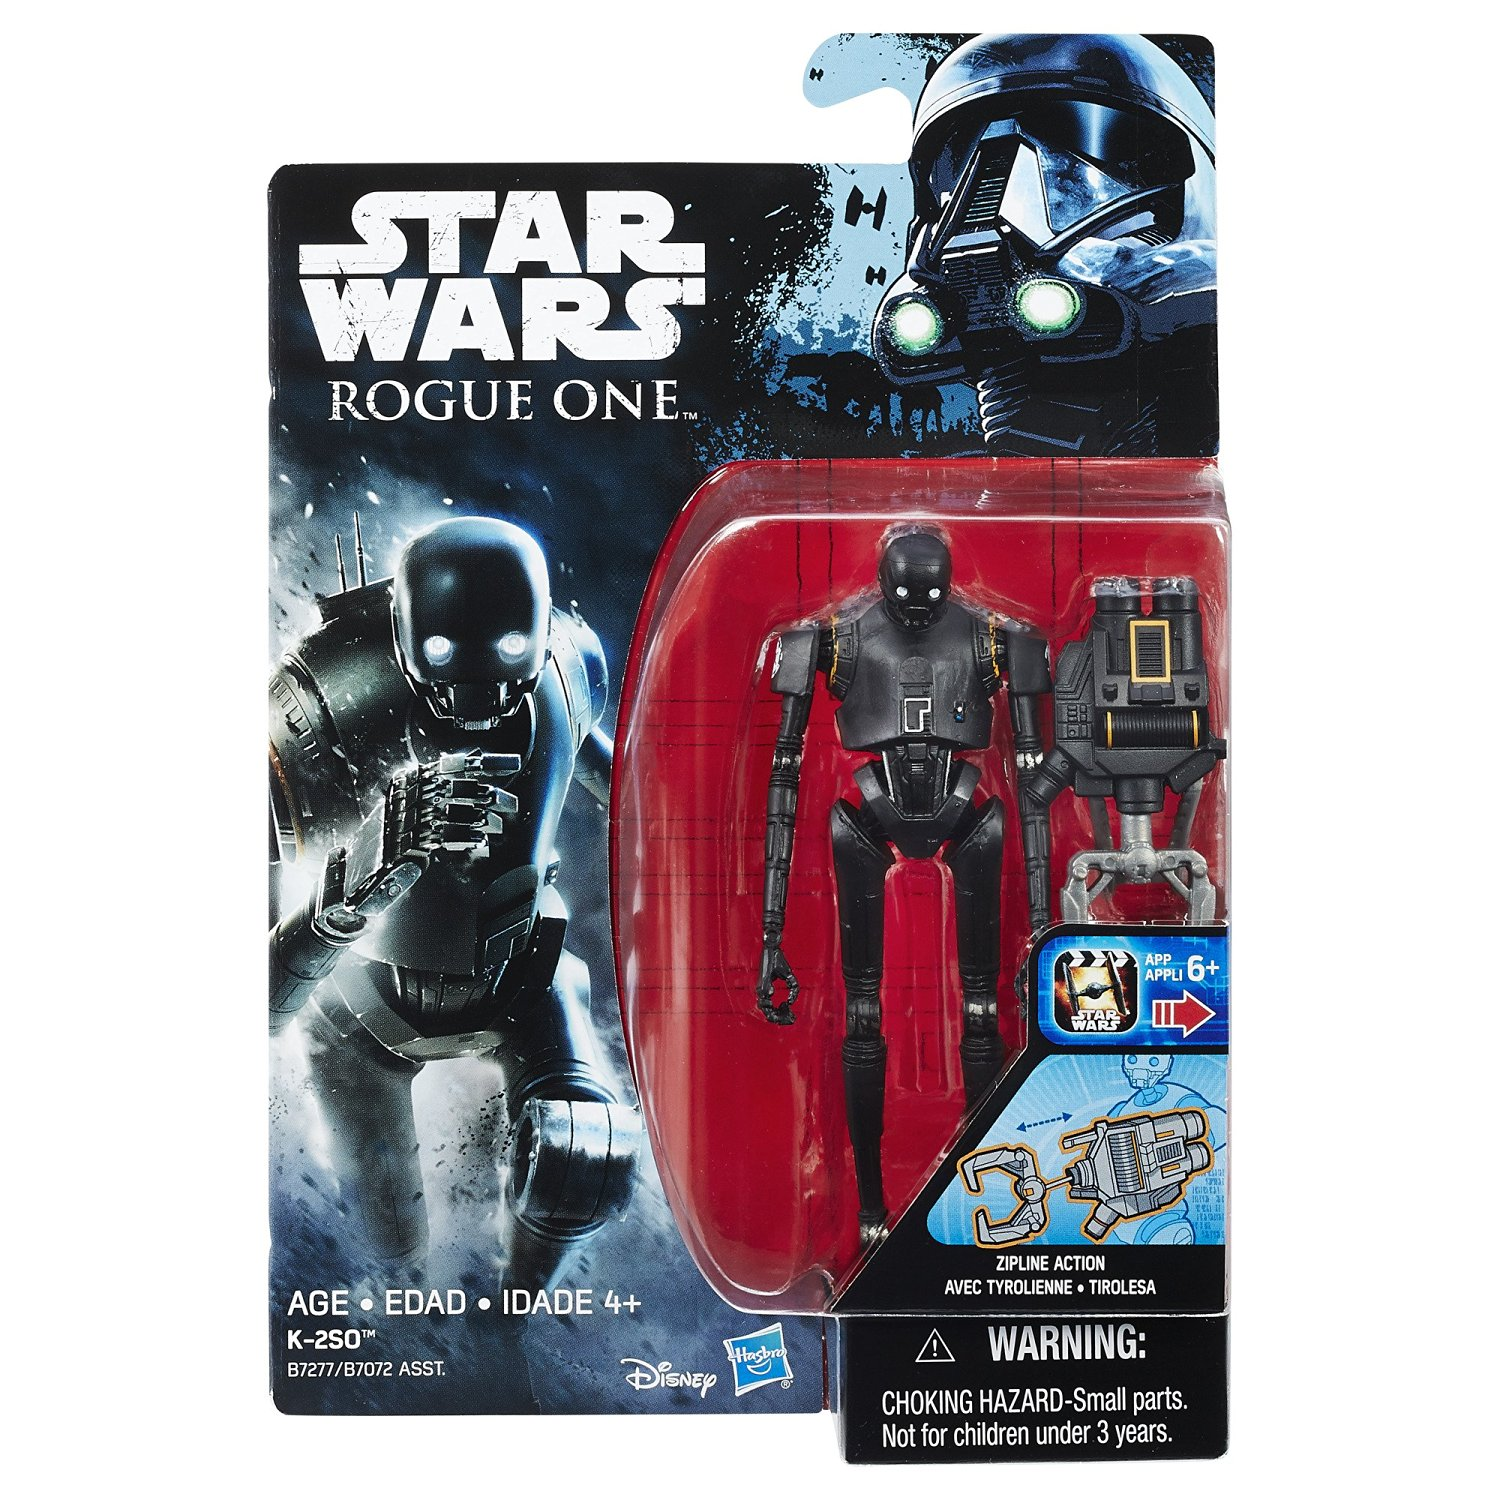 Hasbro Star Wars Rogue One & Rebels 3.75″ Figures Are Up To 30% Off At Amazon